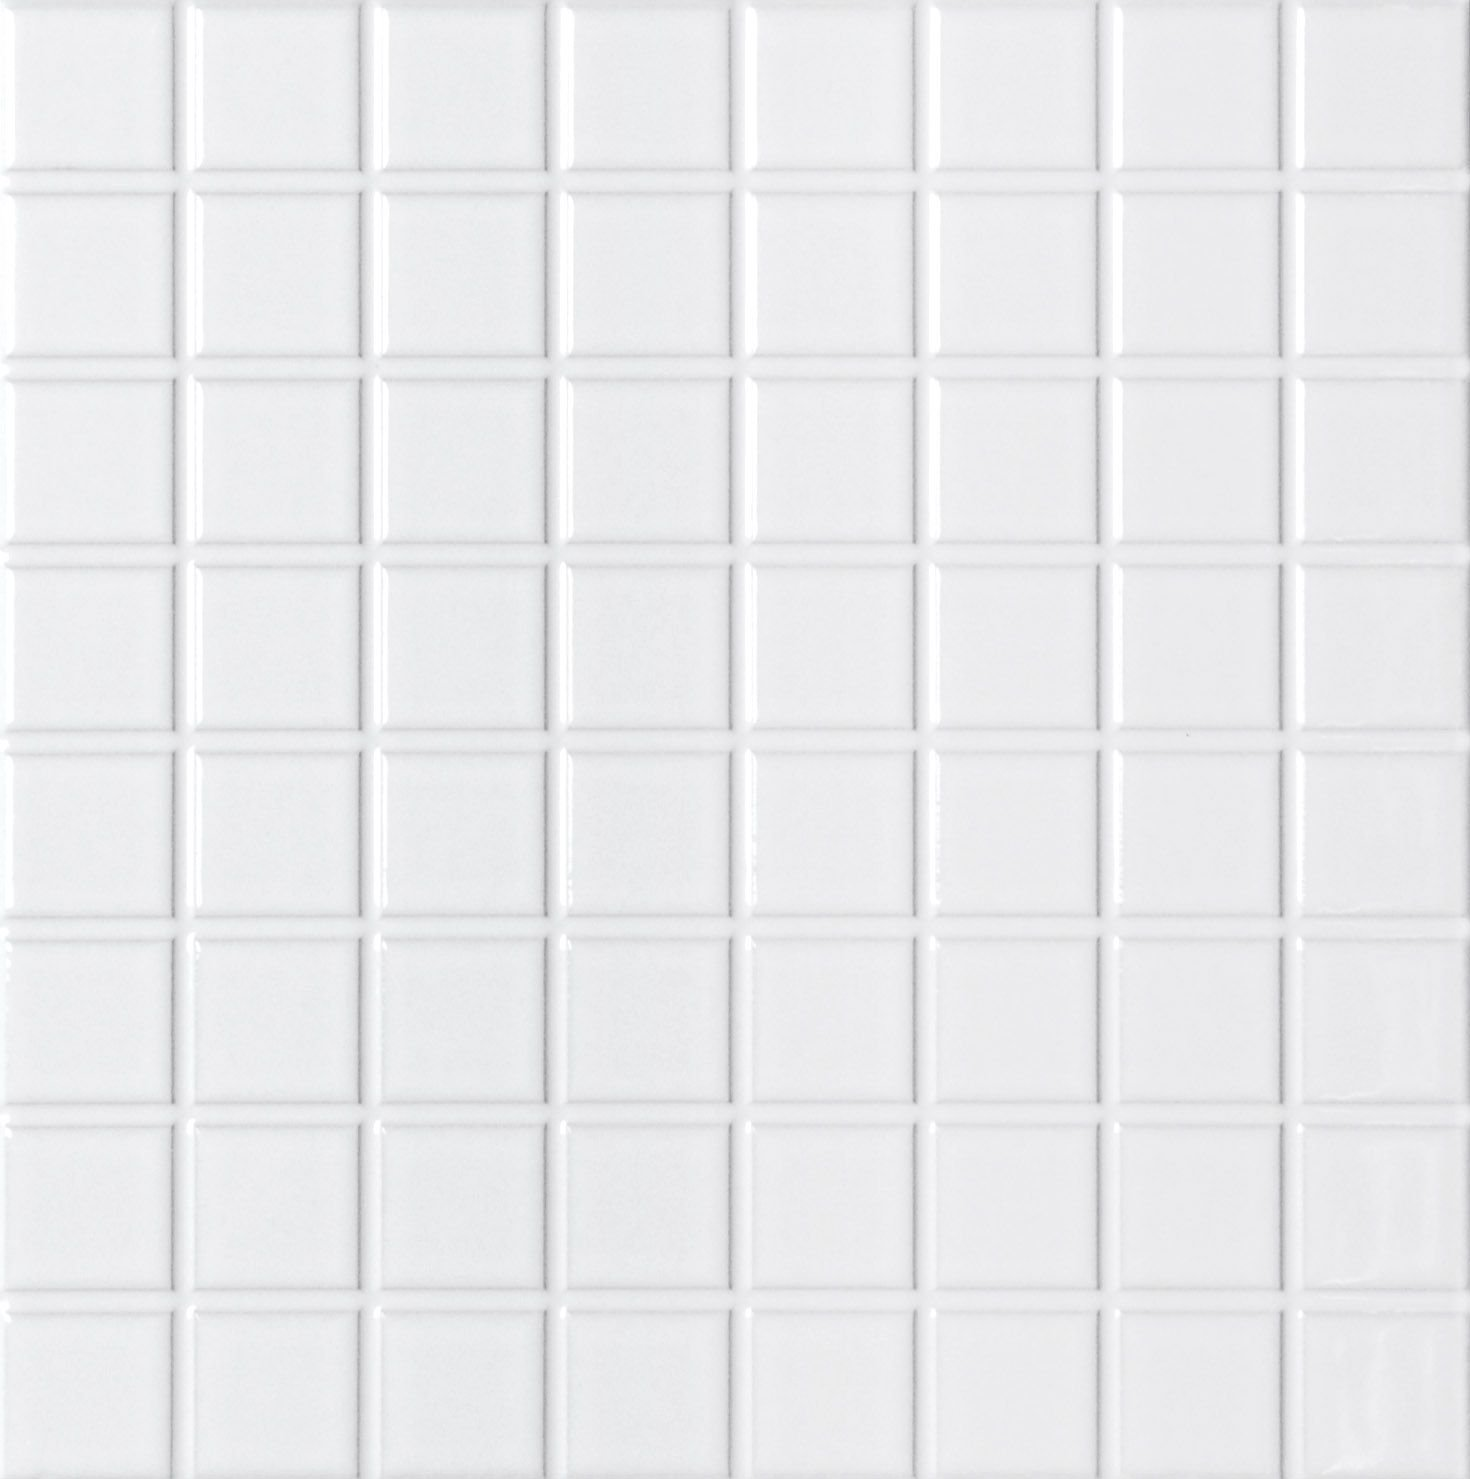 Carrelage blanc 20x20 pas cher for Carrelage blanc brillant 20x20